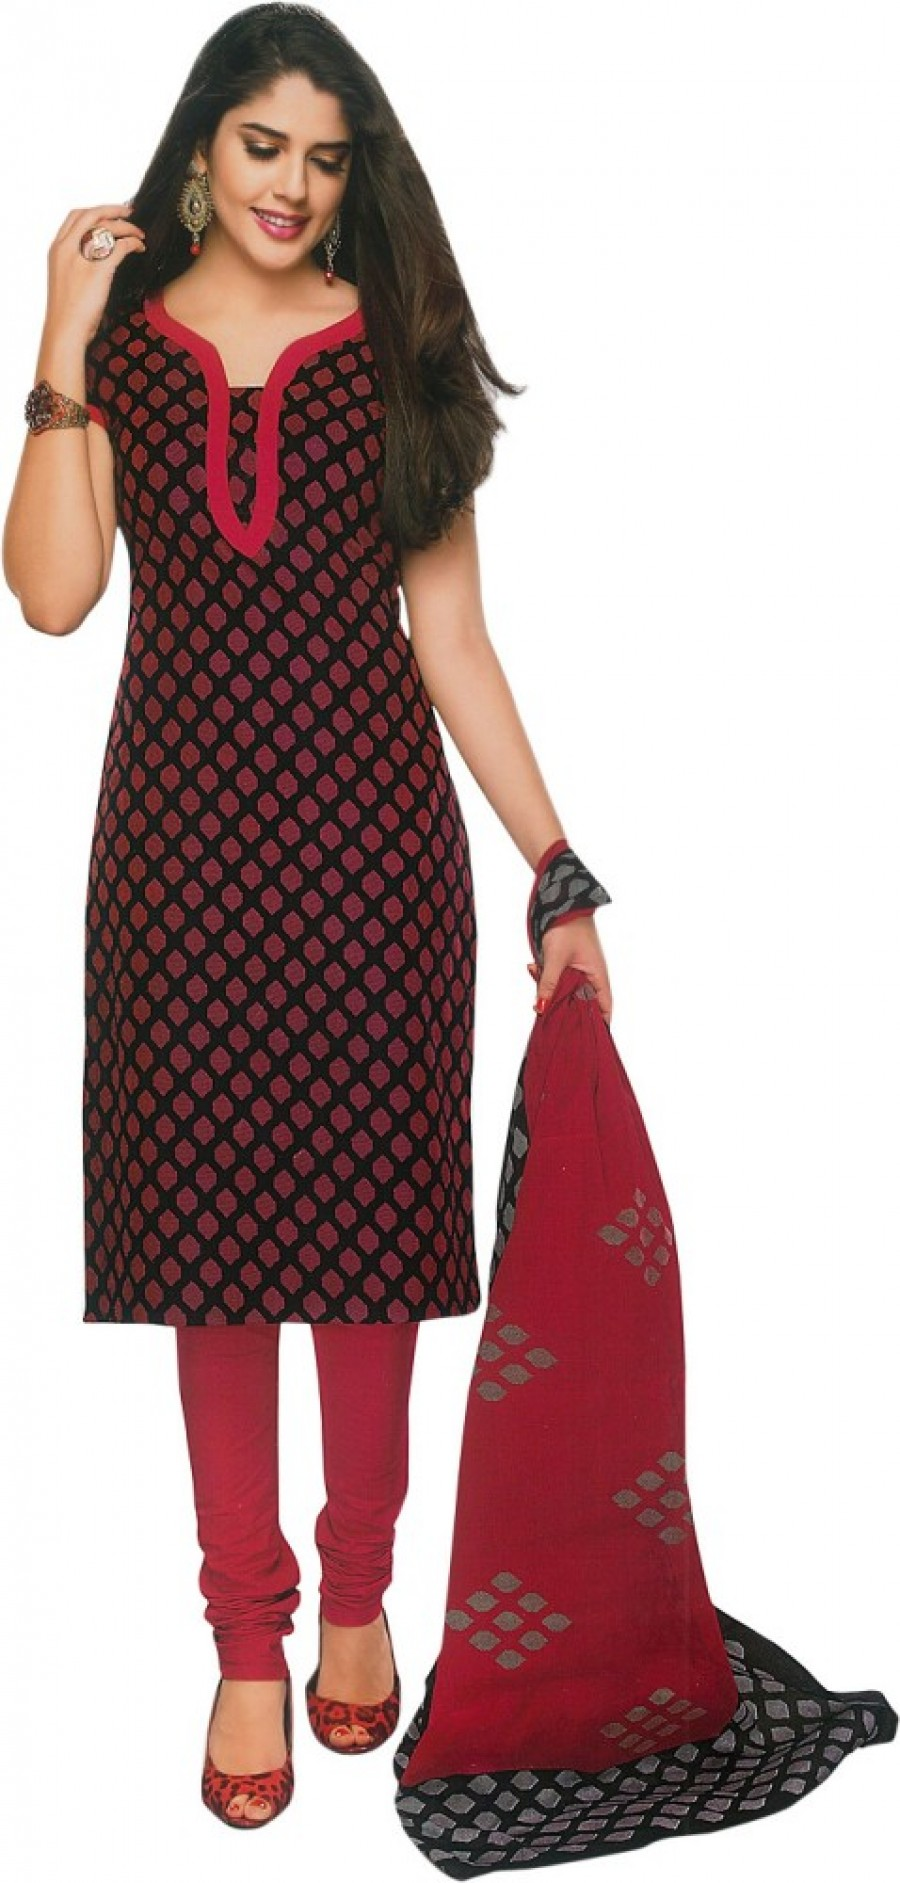 Buy Shree Ganesh Cotton Geometric Print Salwar Suit Dupatta Material Online